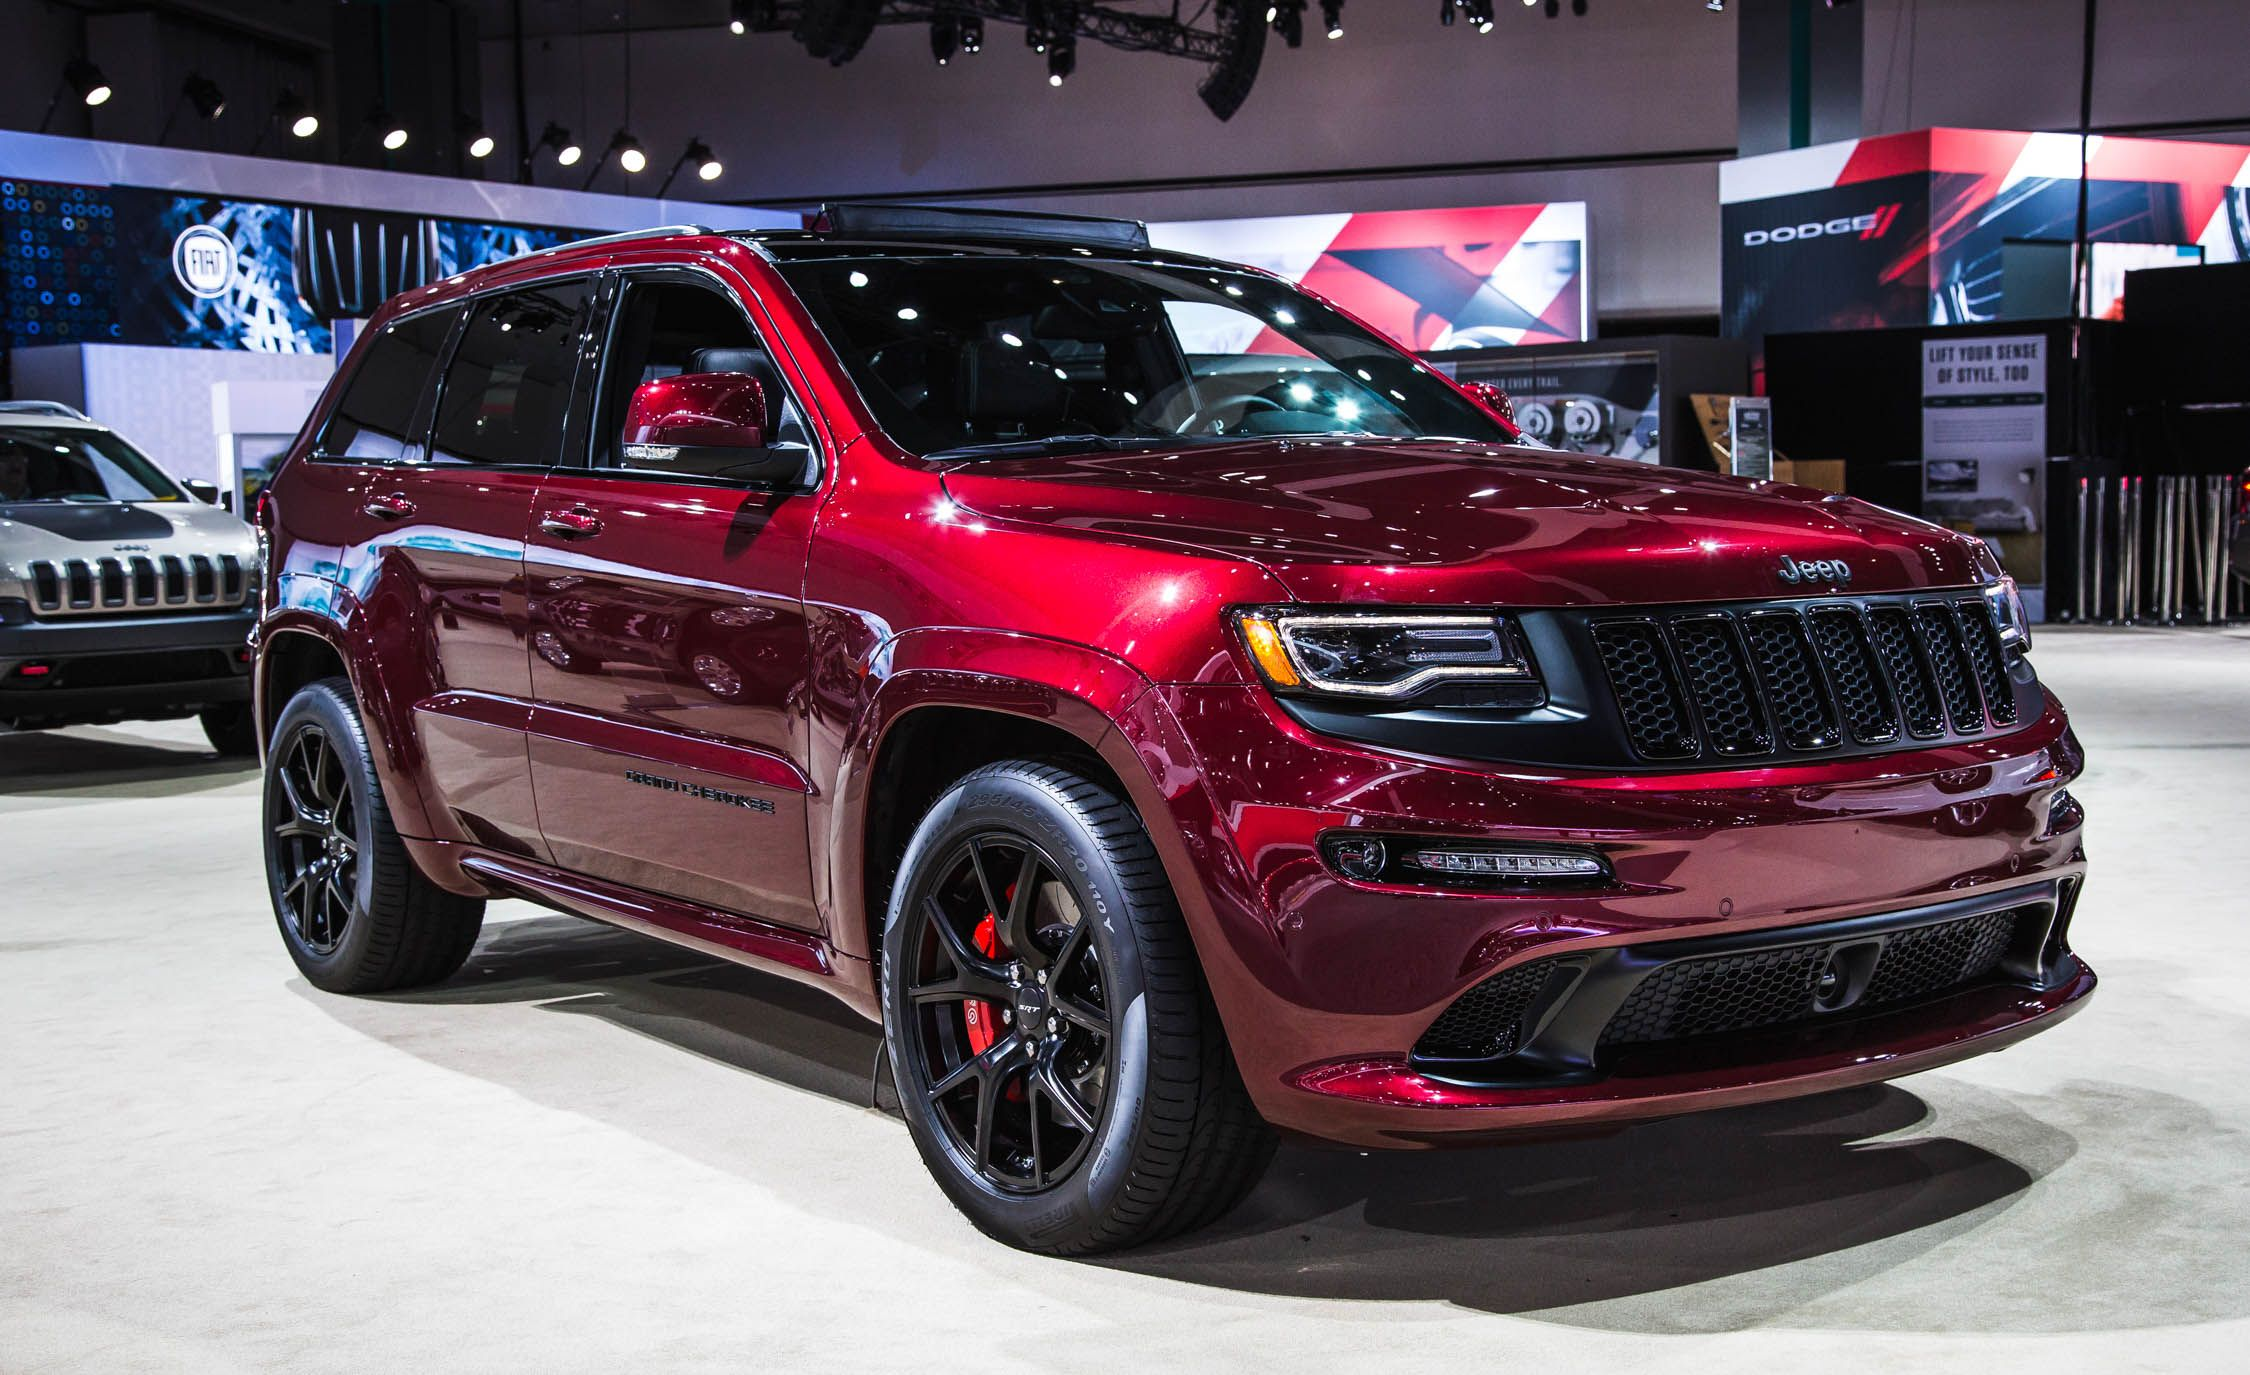 2016 jeep grand cherokee srt pictures | photo gallery | car and driver